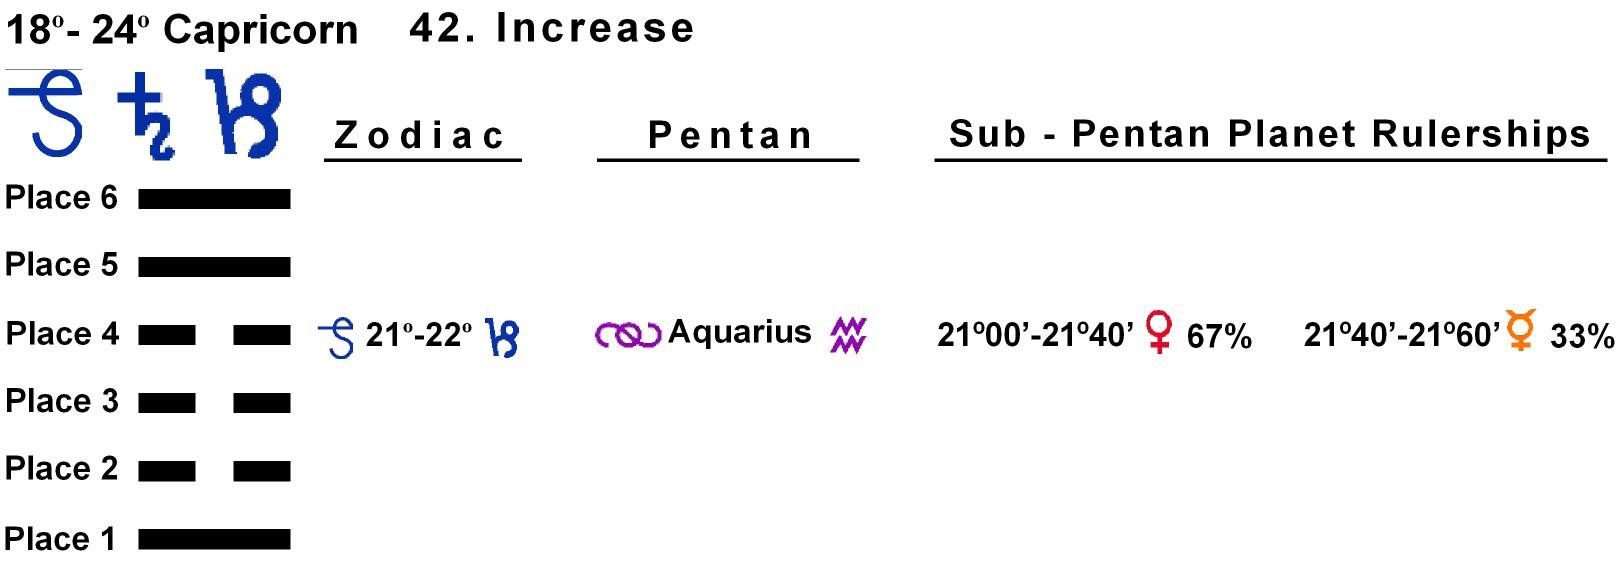 Pent-lines-10CP 21-22 Hx-42 Increase